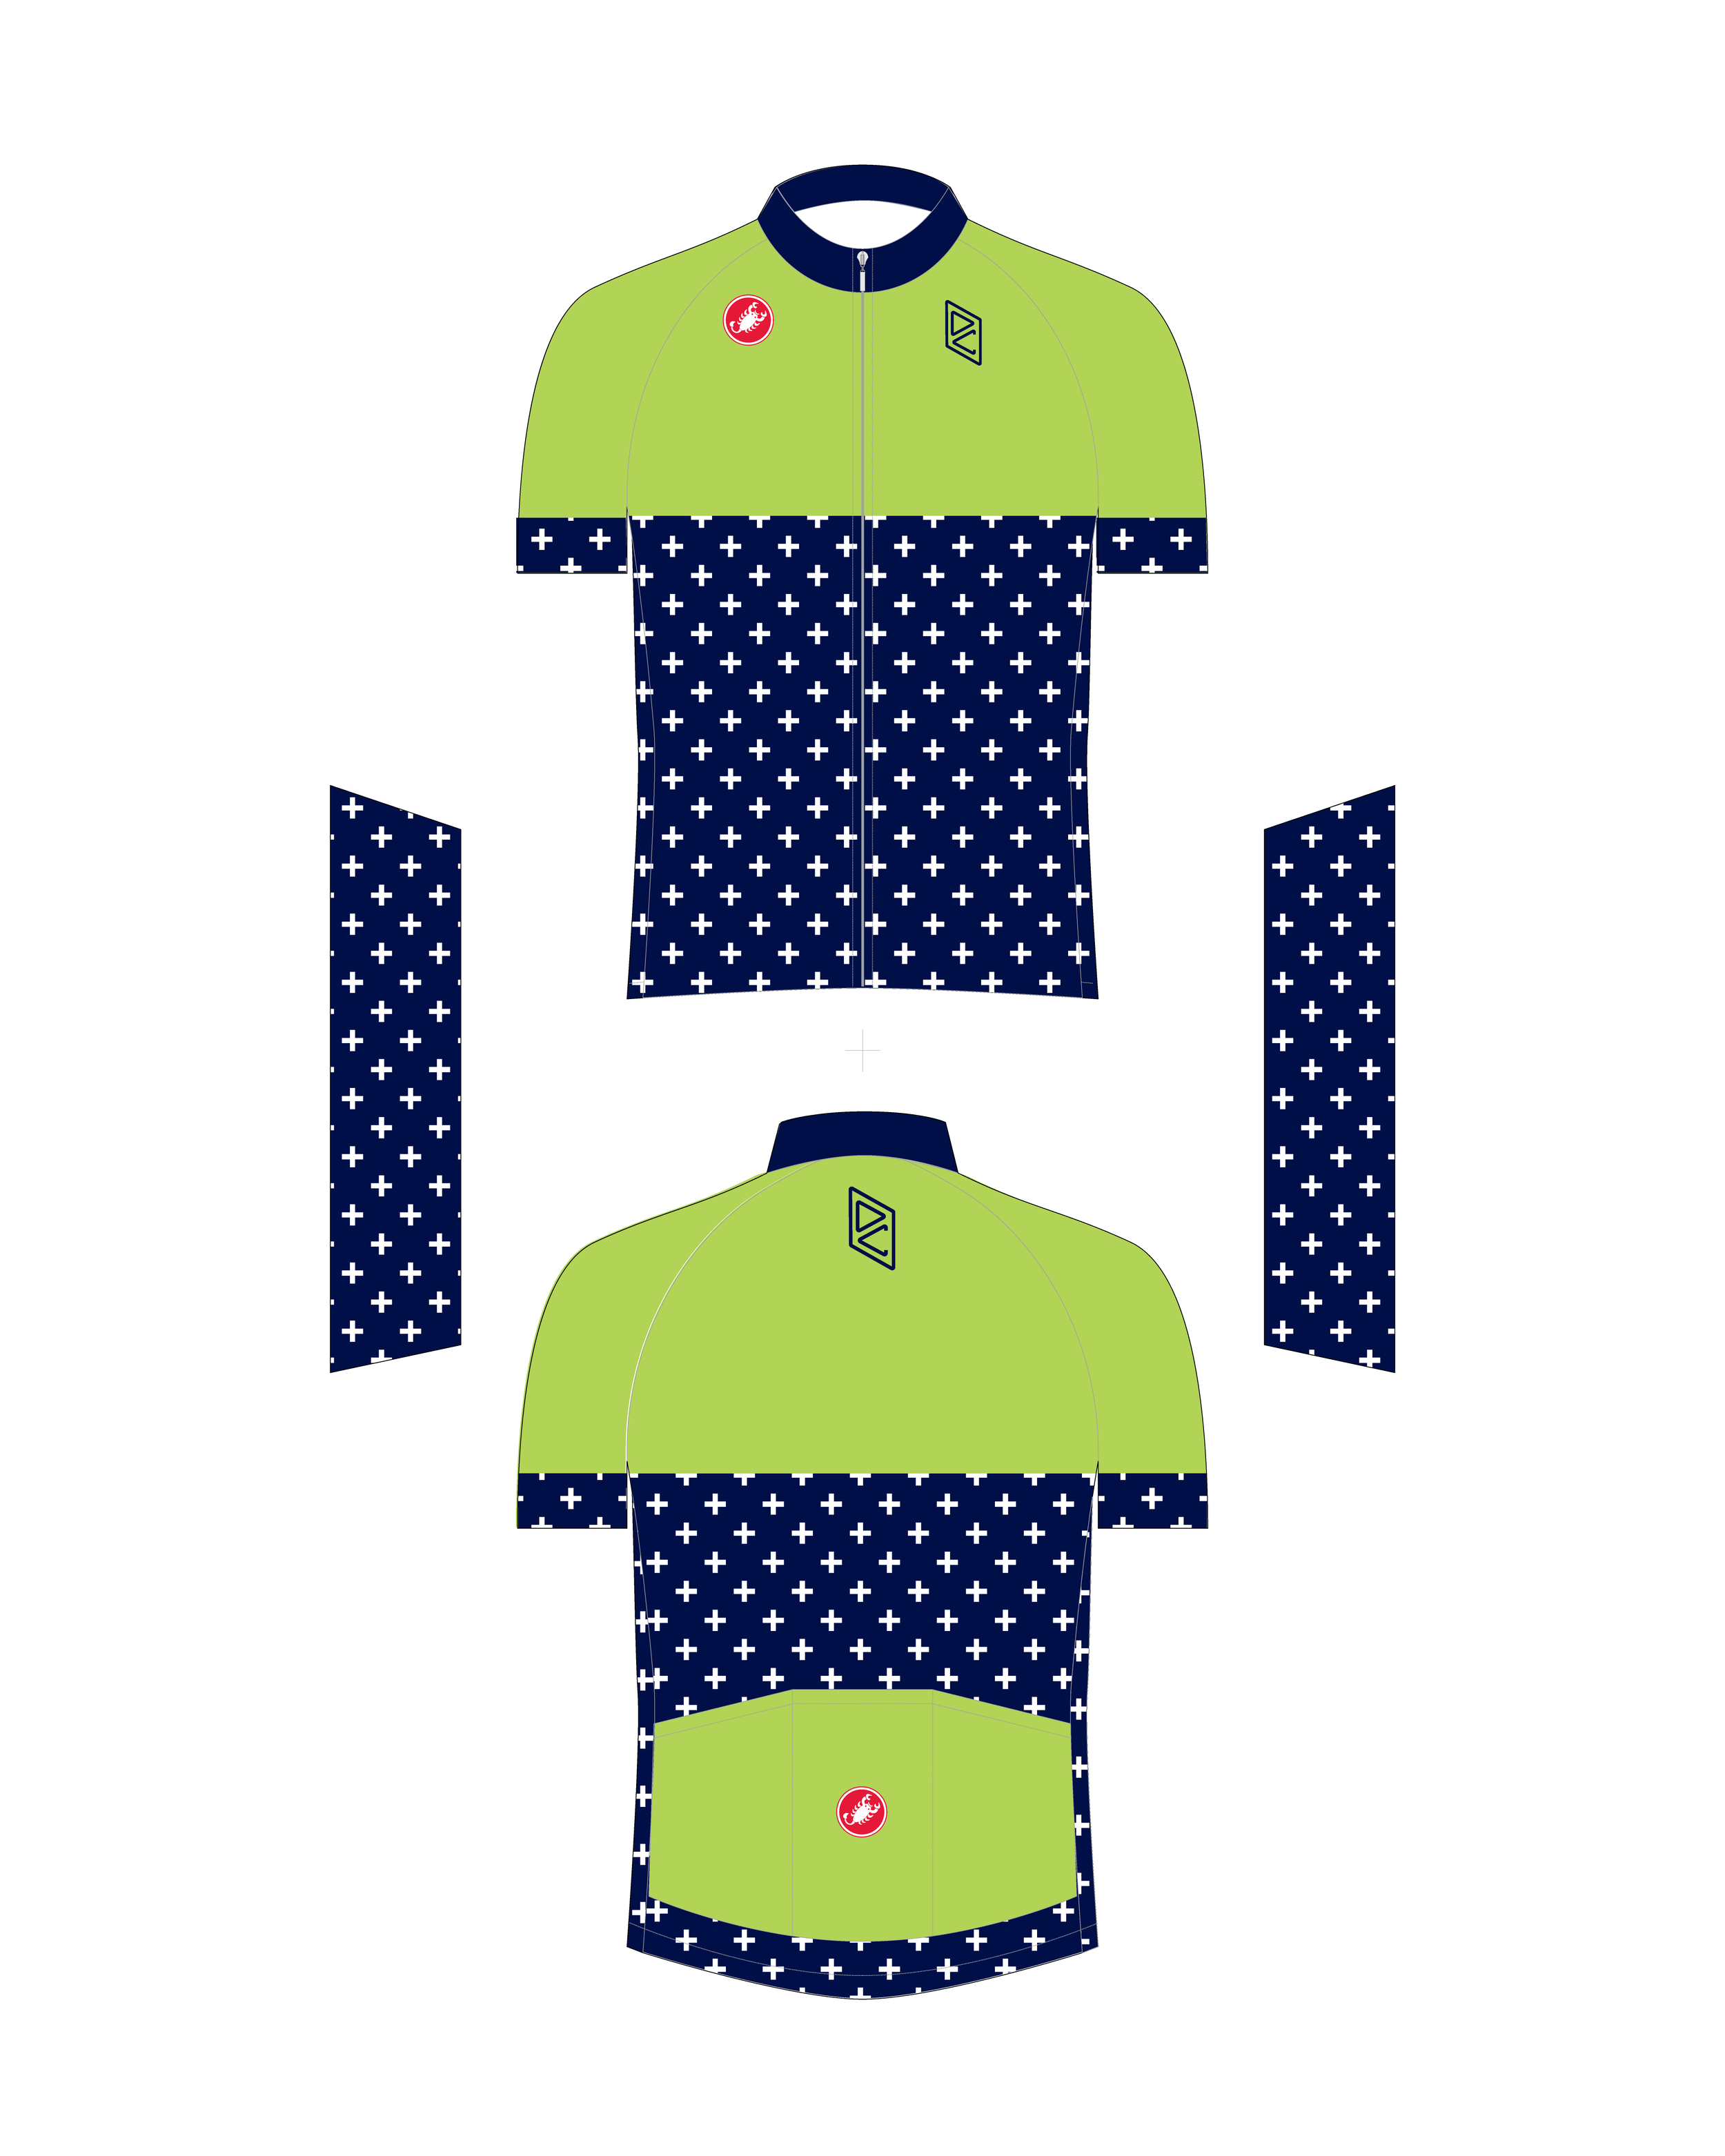 IG Kit Template__Cross Jersey Concept.png